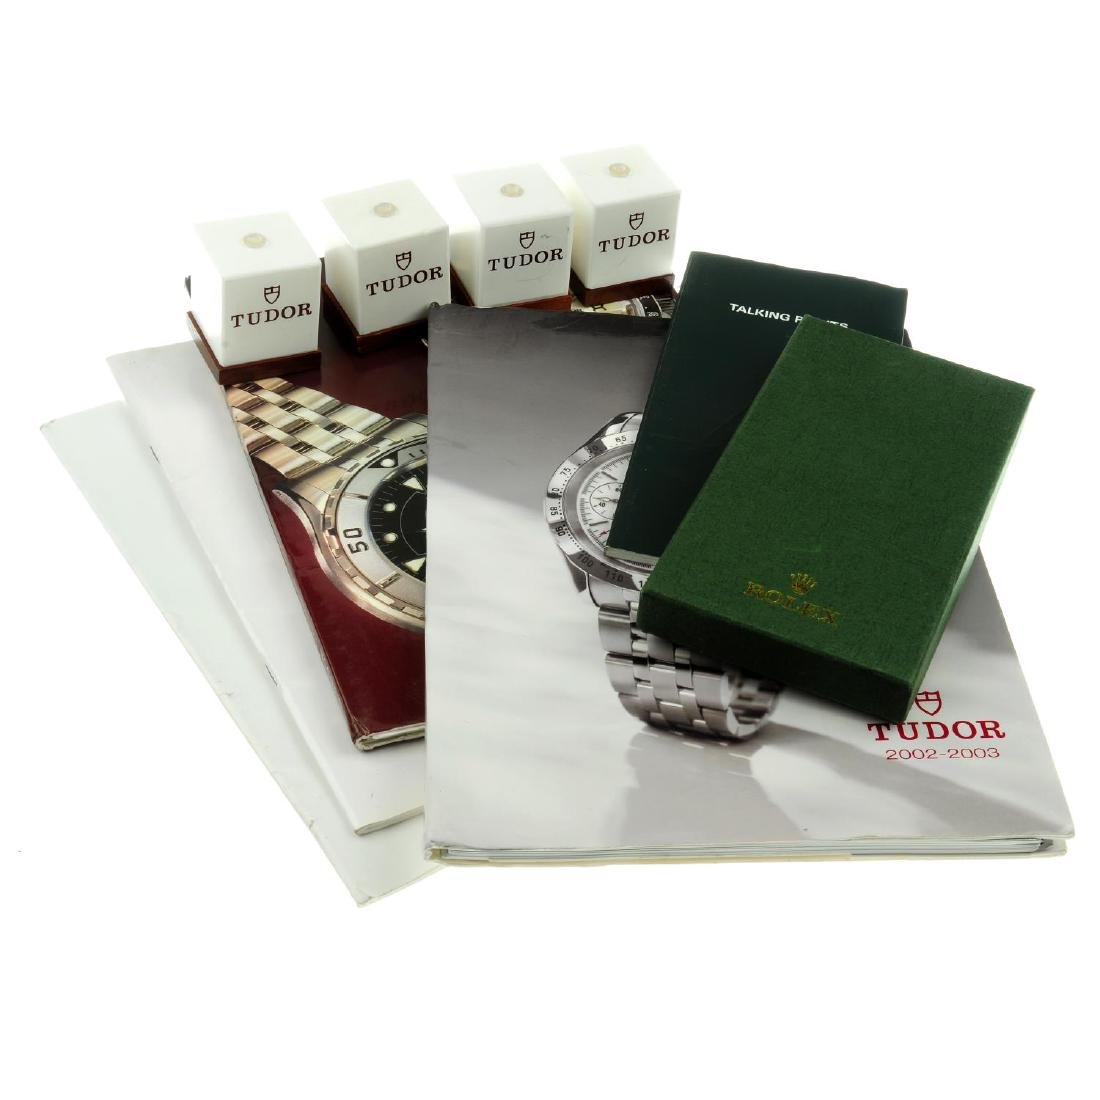 A group of price list books by Rolex and Tudor together